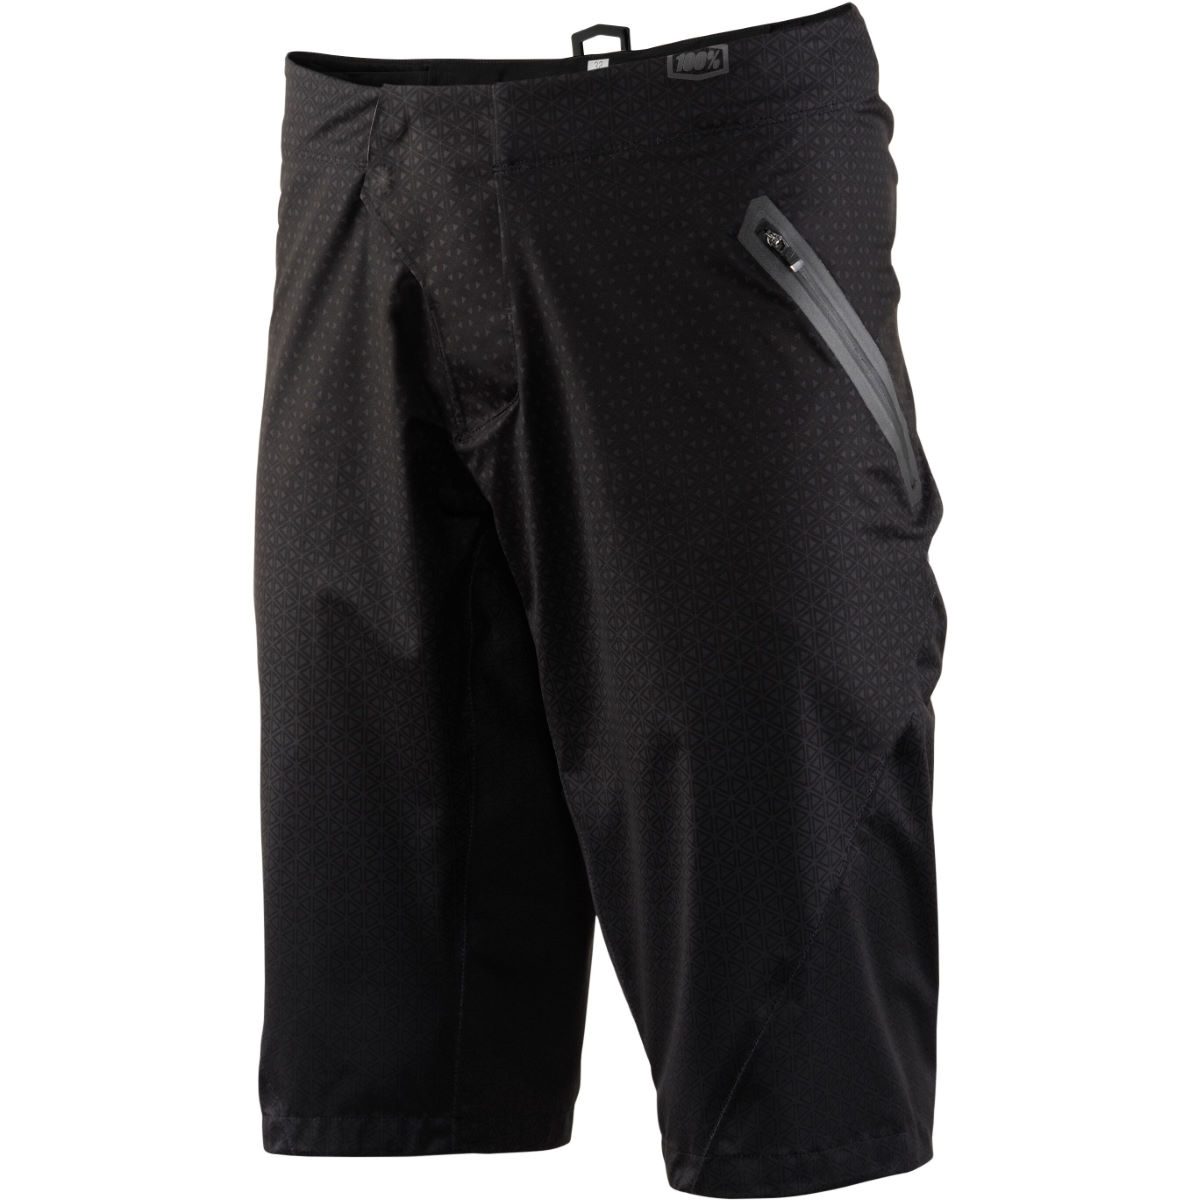 Short 100% Hydromatic - 36 Black Fade Shorts amples